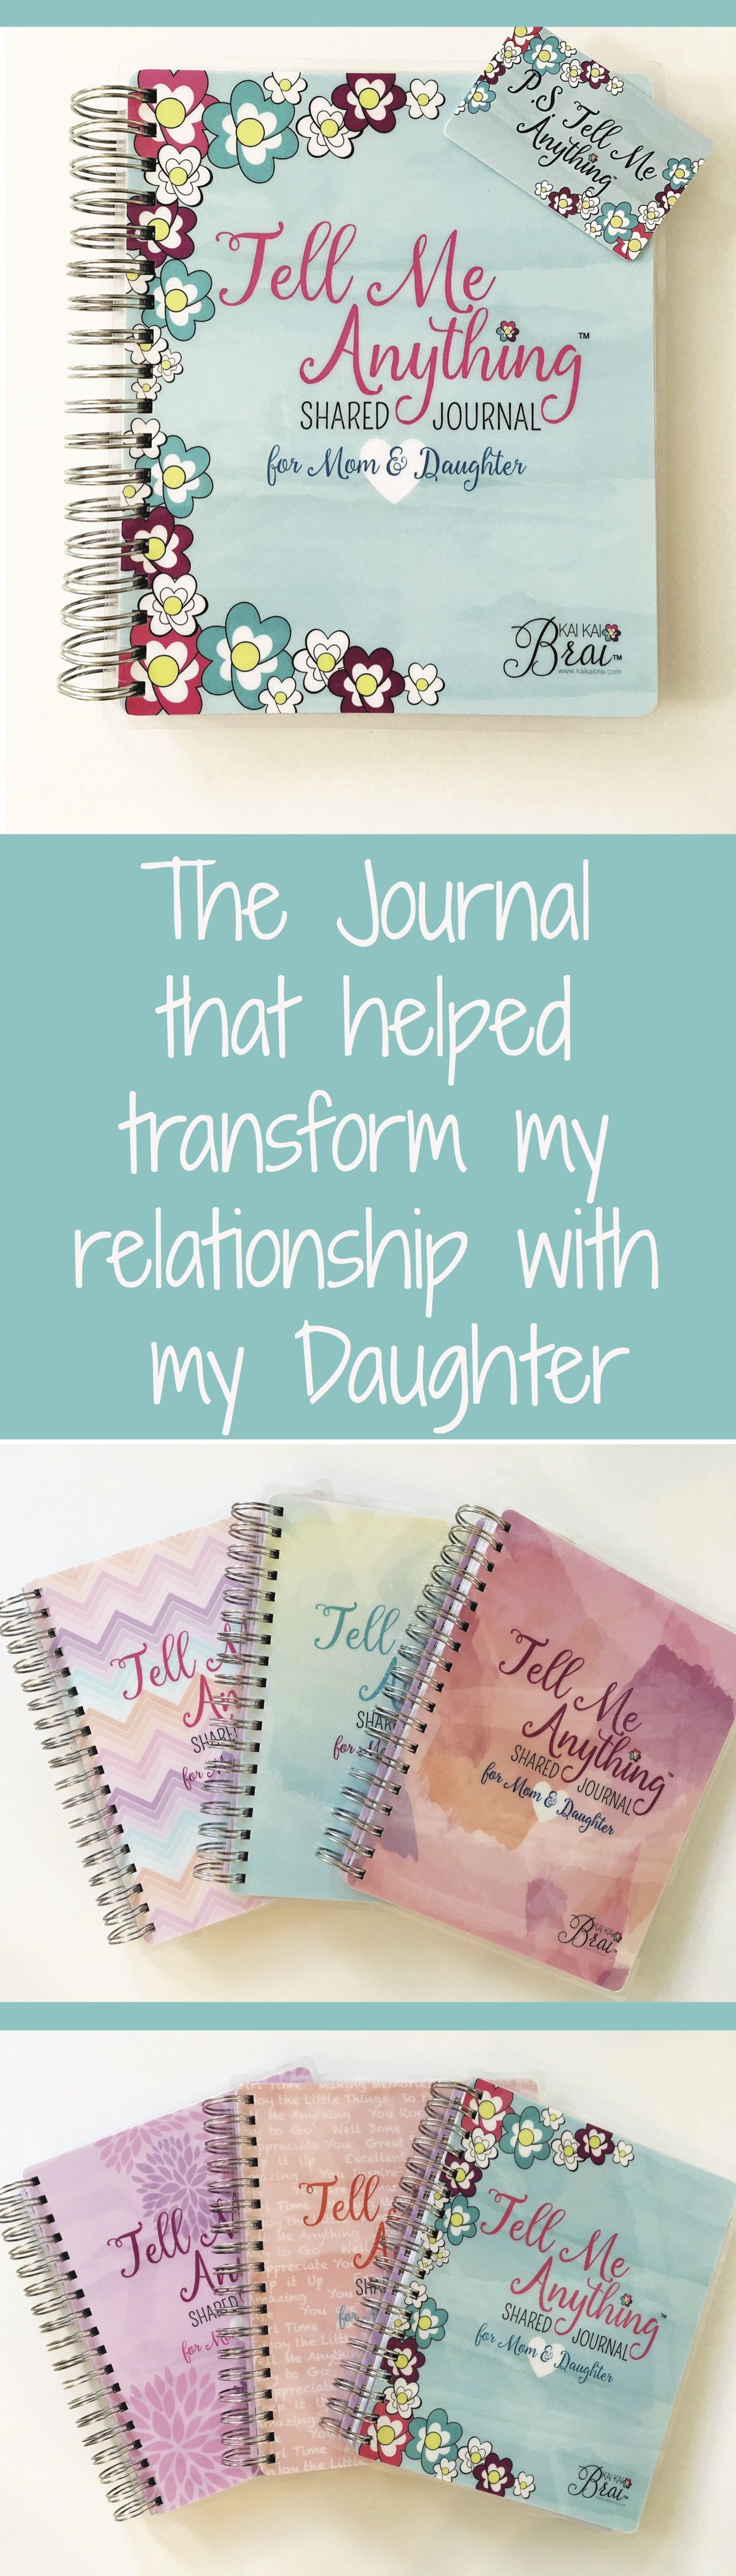 Mom Amp Daughter Tell Me Anything Shared Journal By Kai Kai